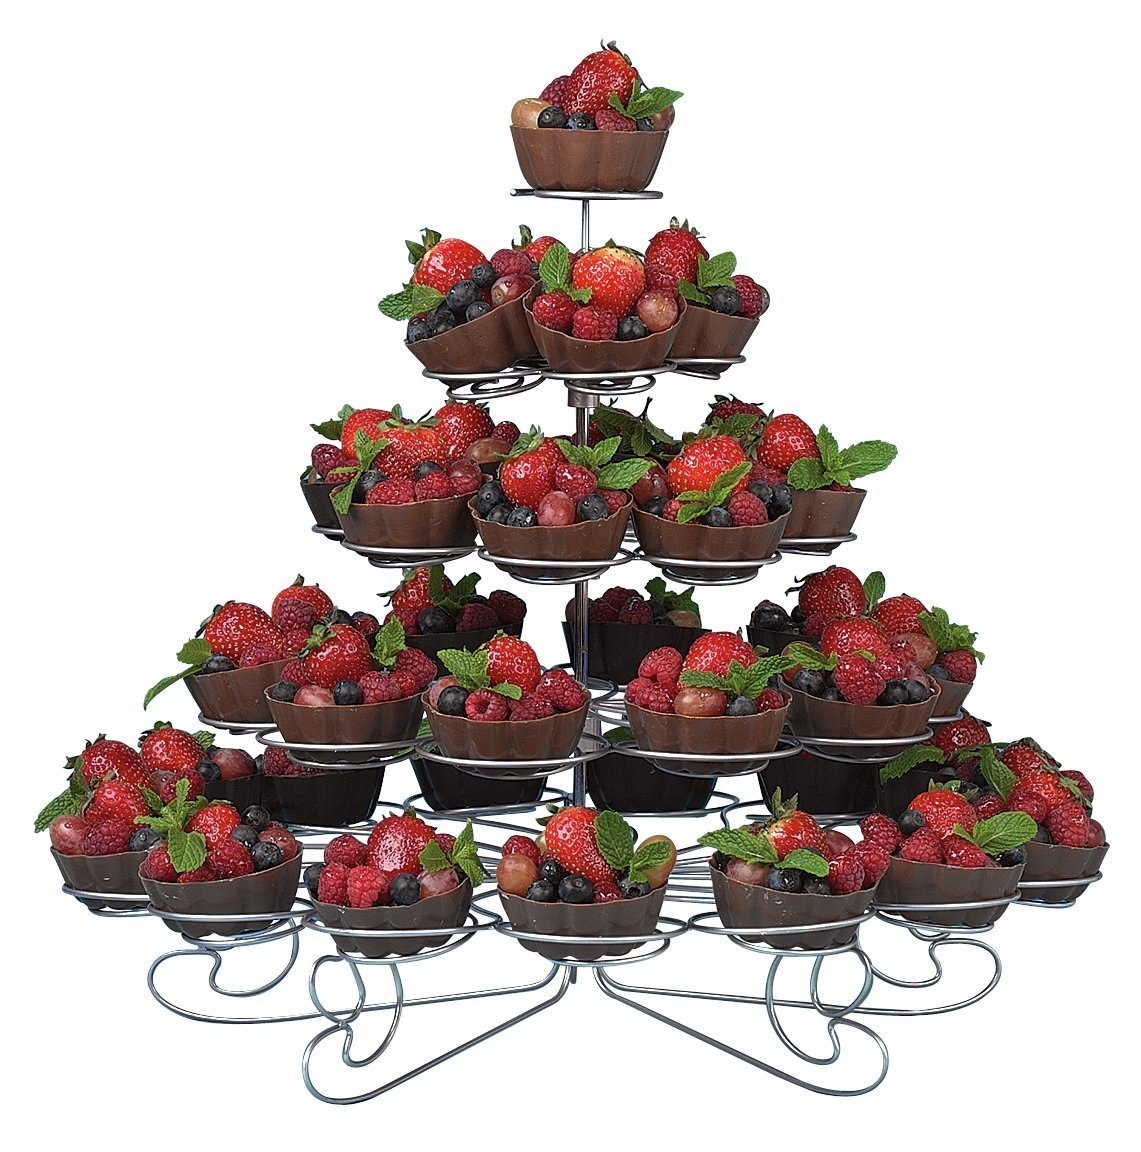 U.S. Cake Supply® Brand 41 Count Metal Cupcake Dessert Stand with 5 Tiers - Great for Holiday & Birthday Parties - Halloween - Thanksgiving - Christmas - 4th of July - Valentines Day - Birthdays - Use with Themed Wilton Cupcake Baking Cups